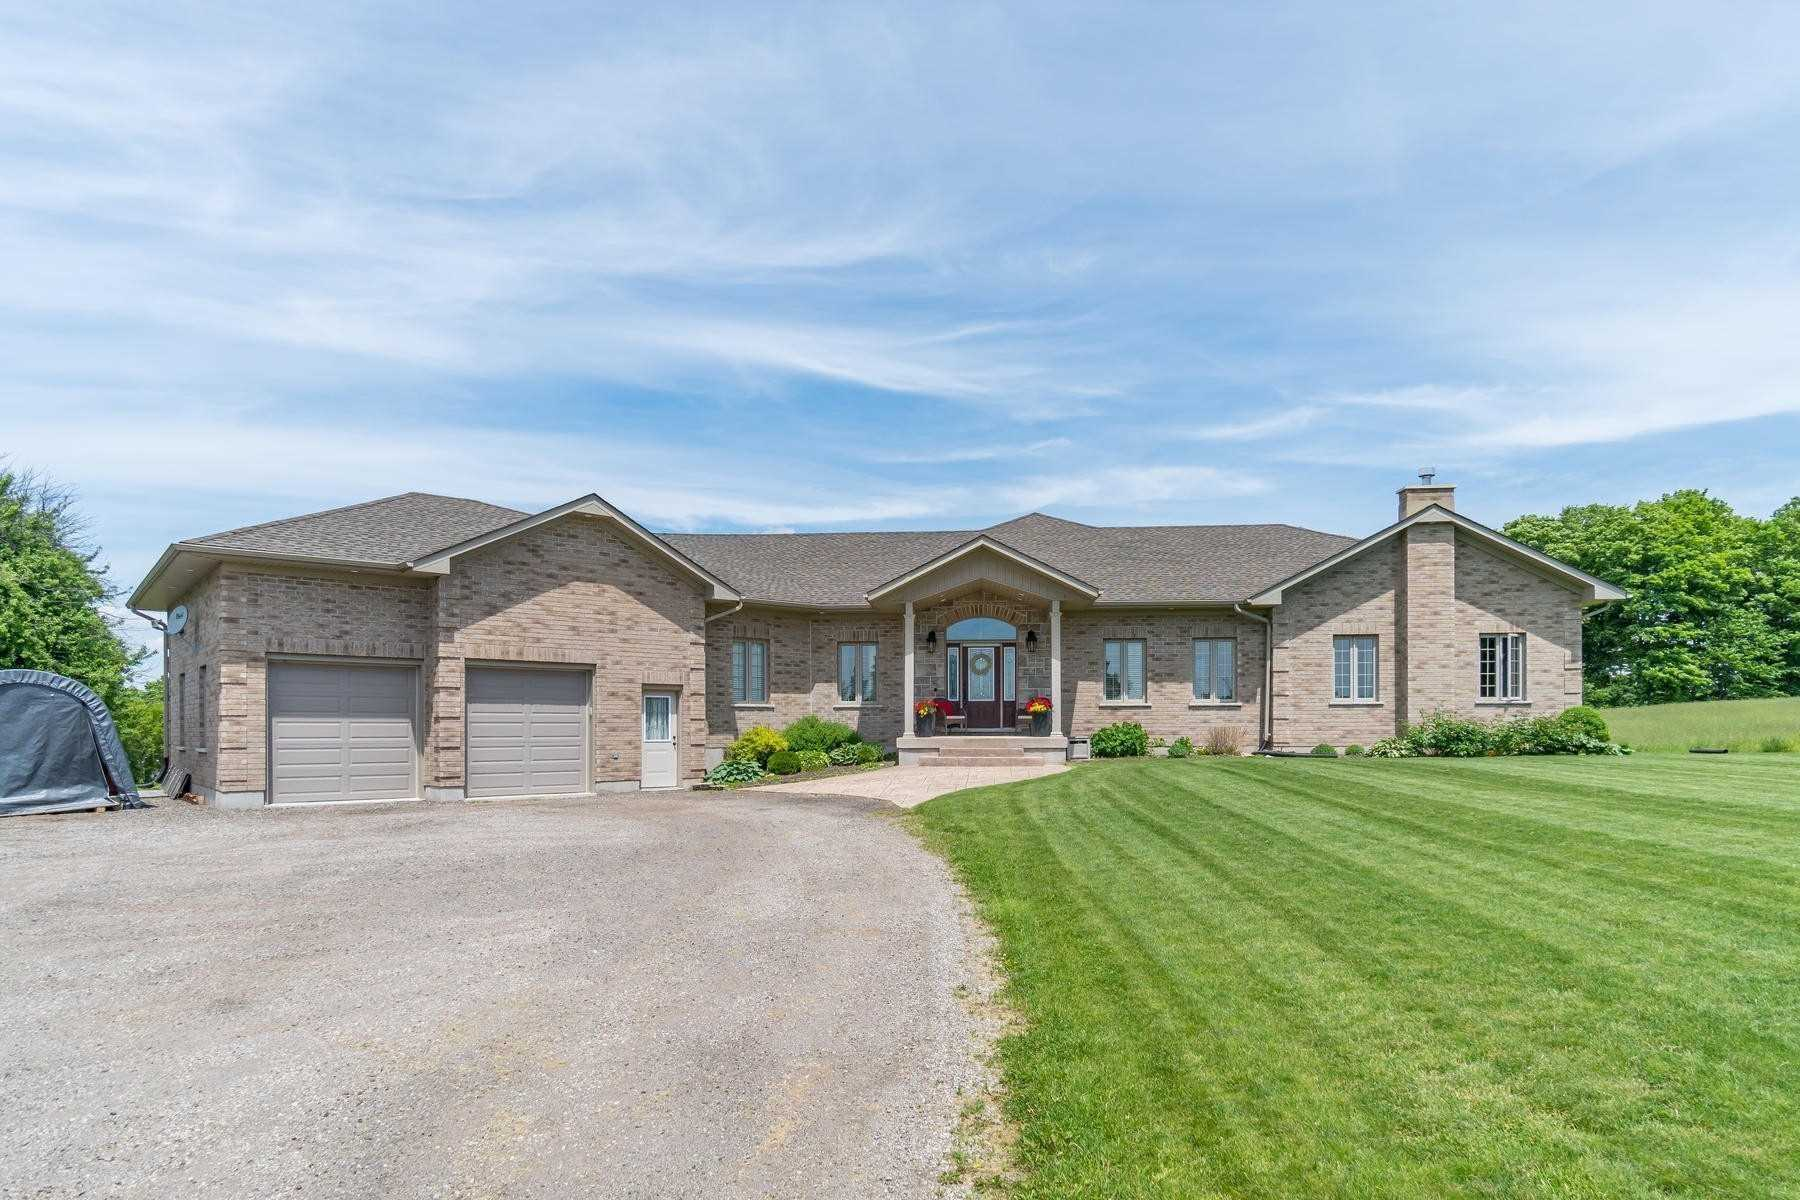 For Sale: 6680 Laird Road West, Puslinch, ON   4 Bed, 4 Bath House for $1699000.00. See 20 photos!